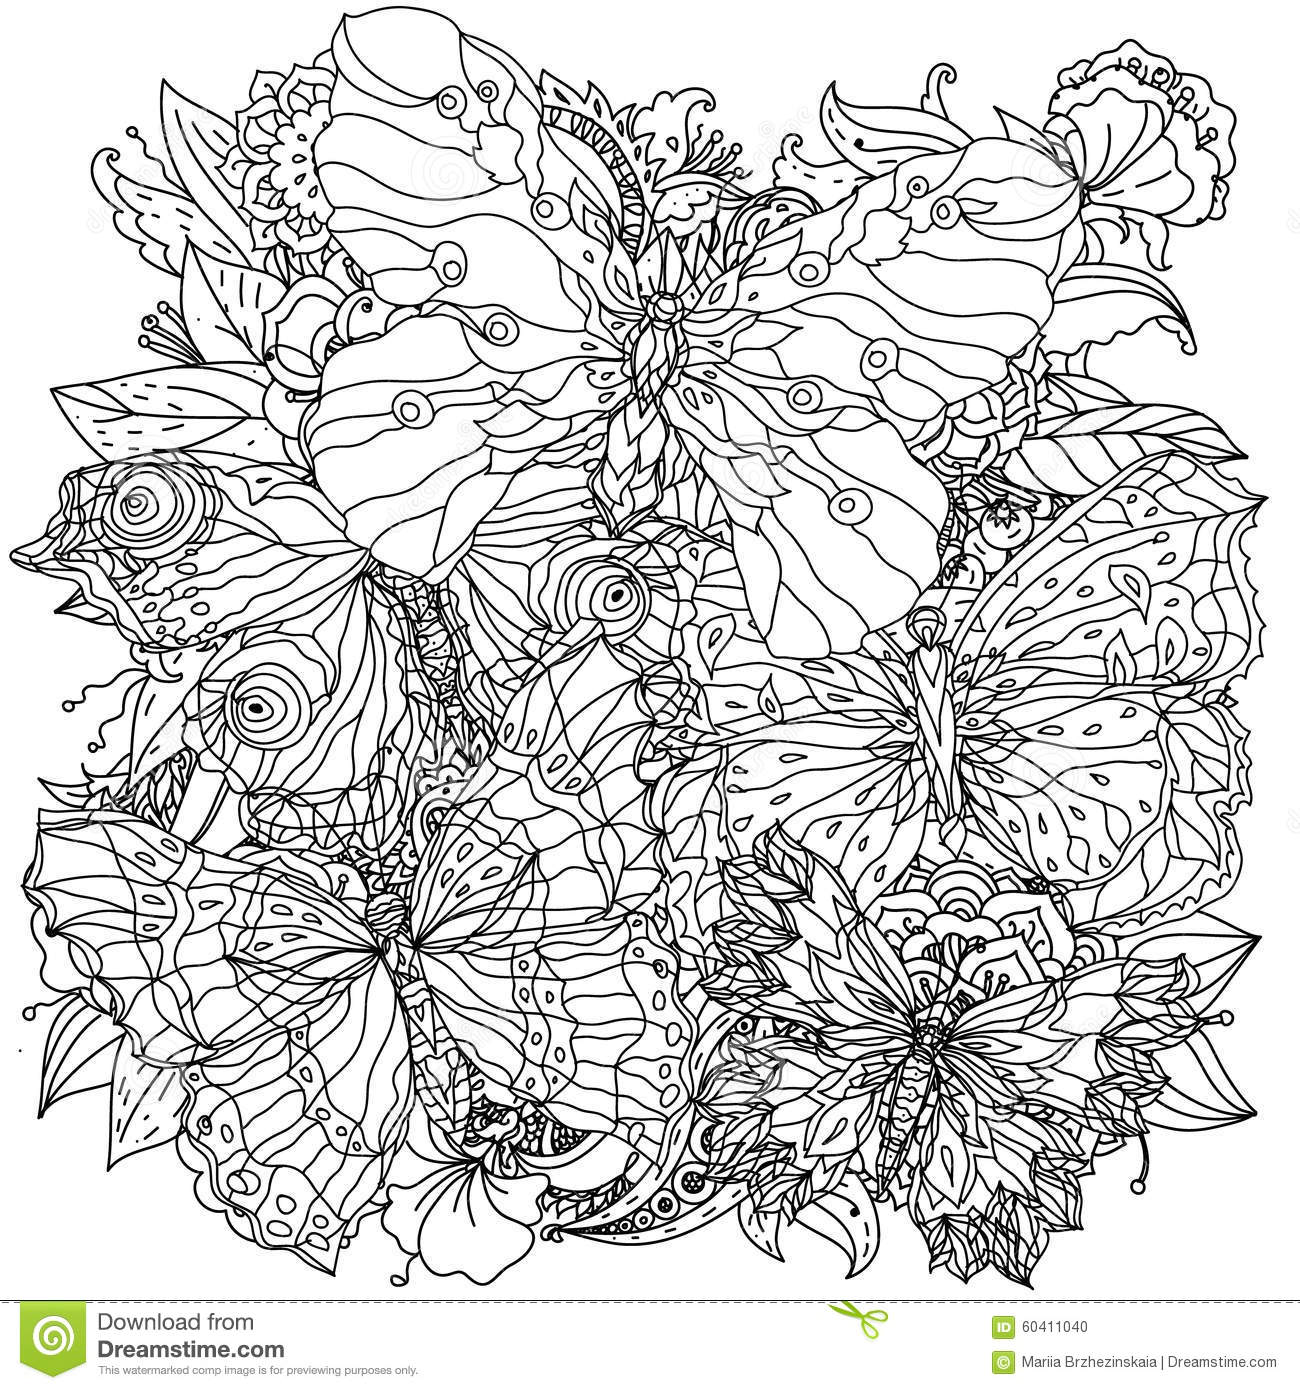 Zen colouring in book - Coloring Book Zen Pattern For Coloring Book Stock Photo